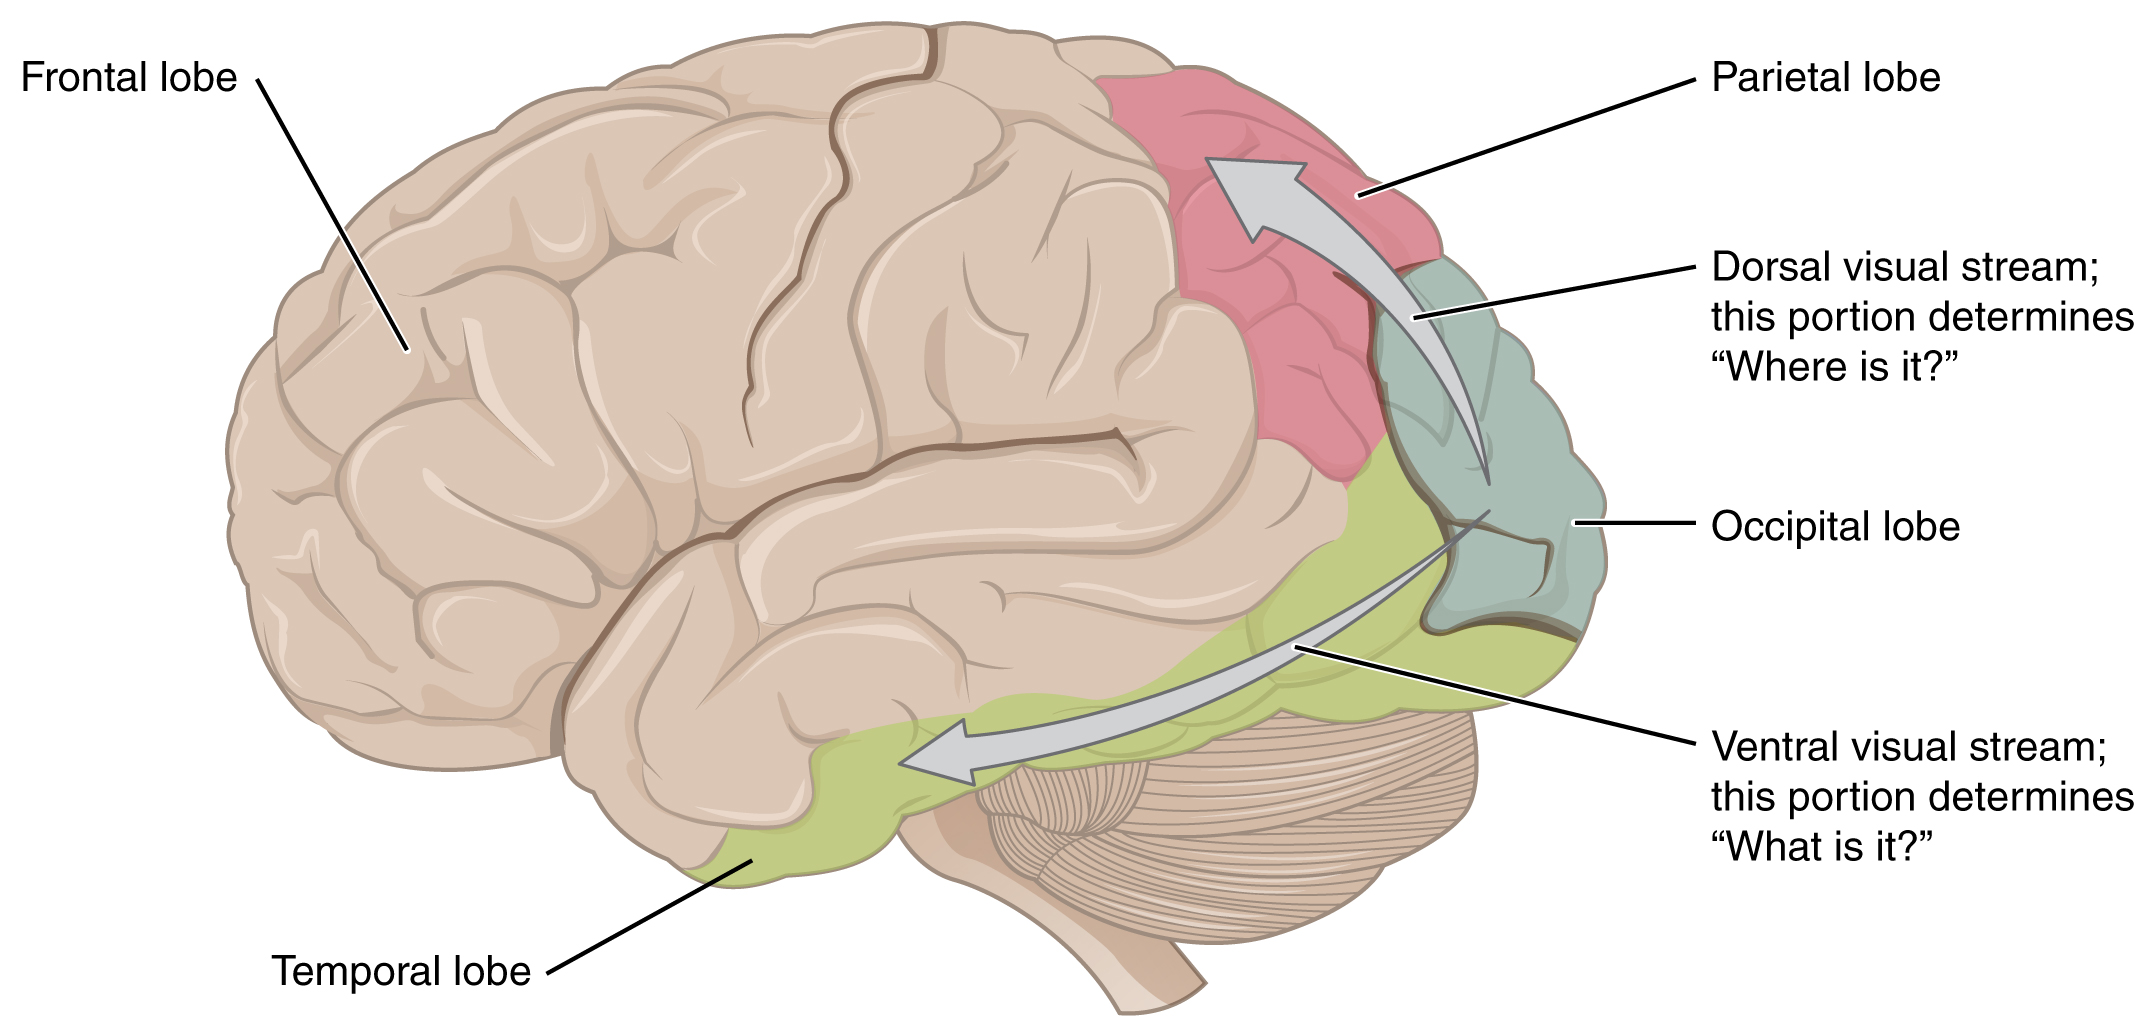 This image shows the side of the human brain and maps different regions to different visual functions.